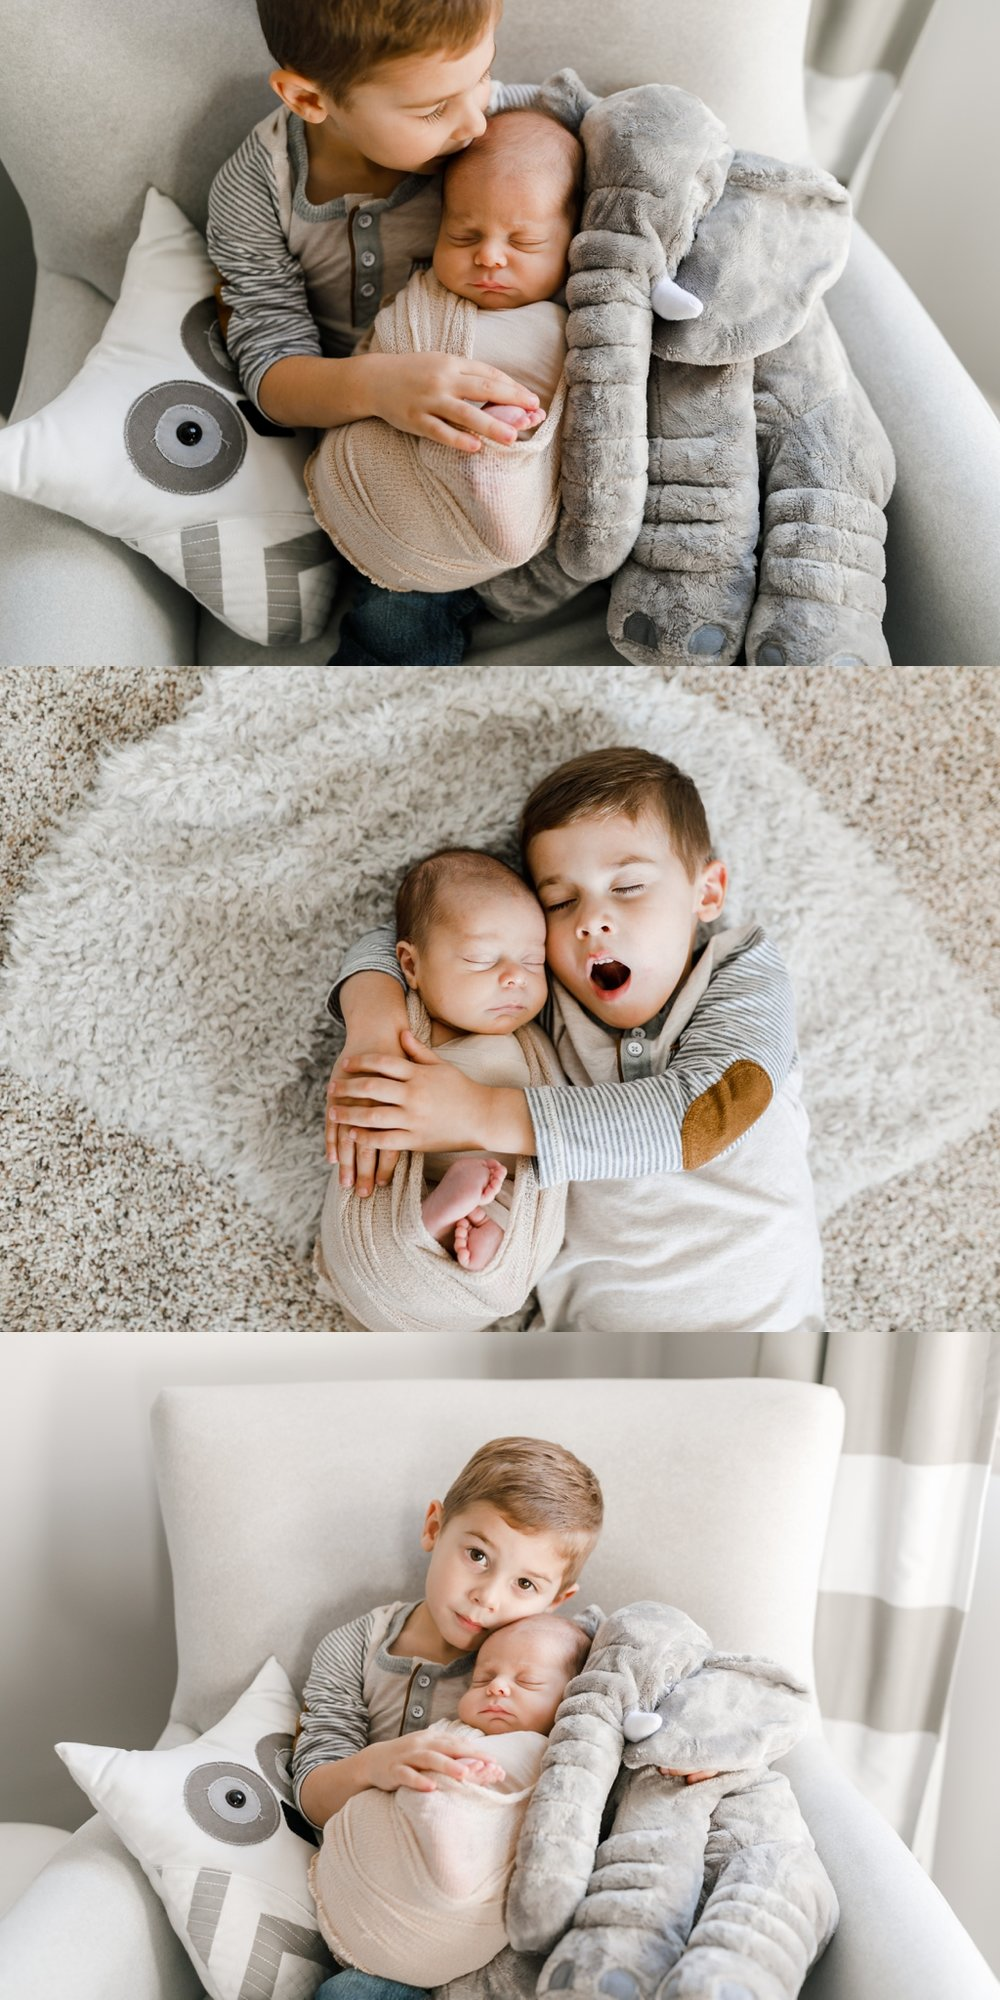 chicago newborn lifestyle photographer baby brother jenny grimm photography